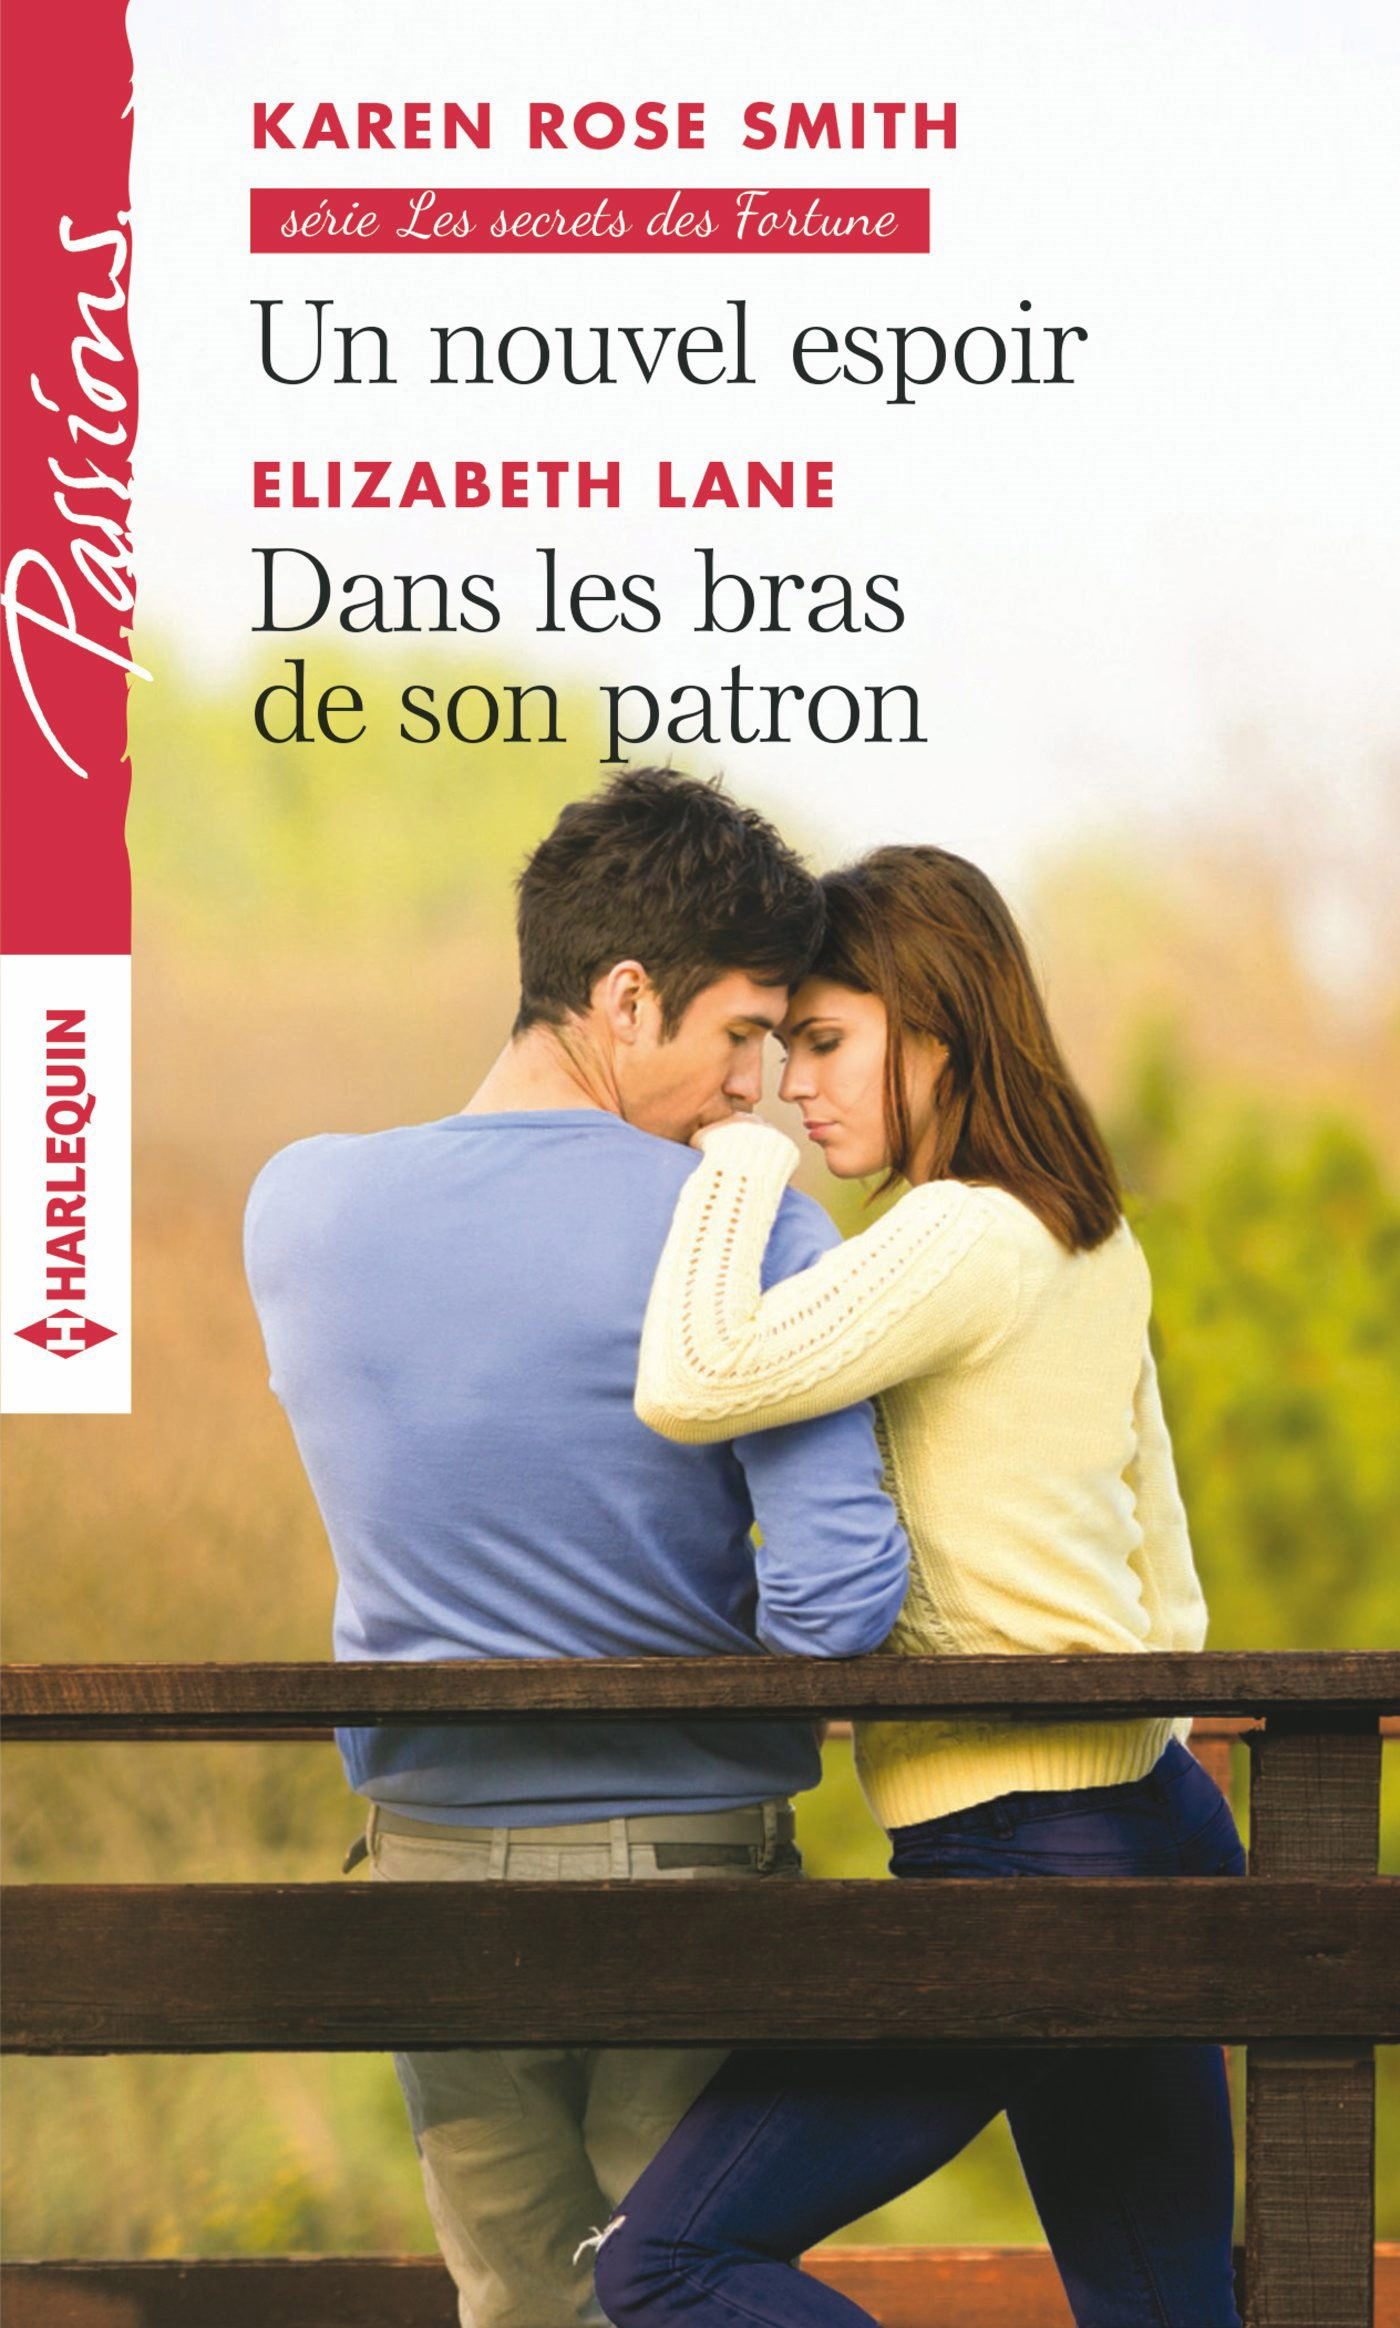 Couverture : Karen Rose Smith, Un nouvel espoir, Harlequin